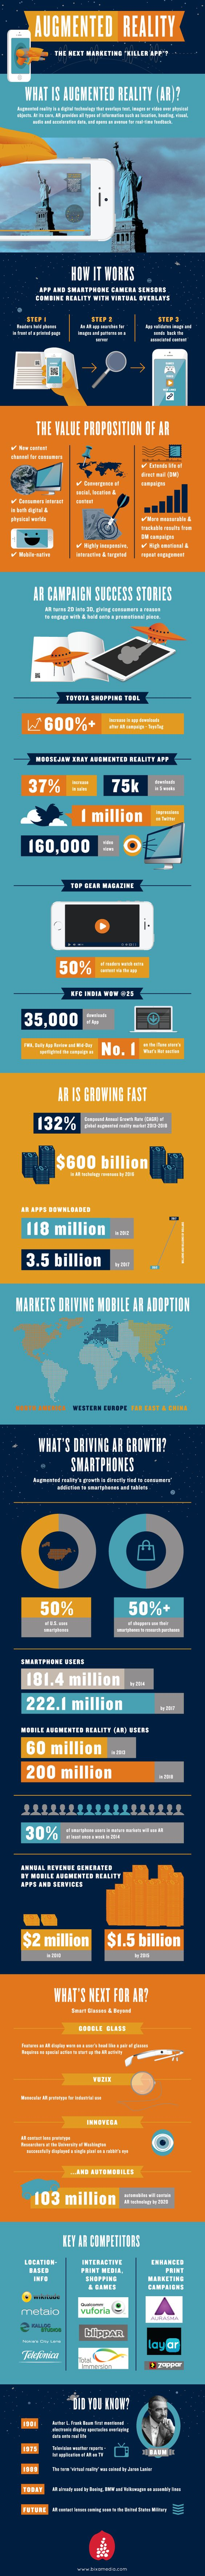 "Augmented Reality - The Next Marketing ""Killer App""? #infographic #DigitalMarketing #AR"